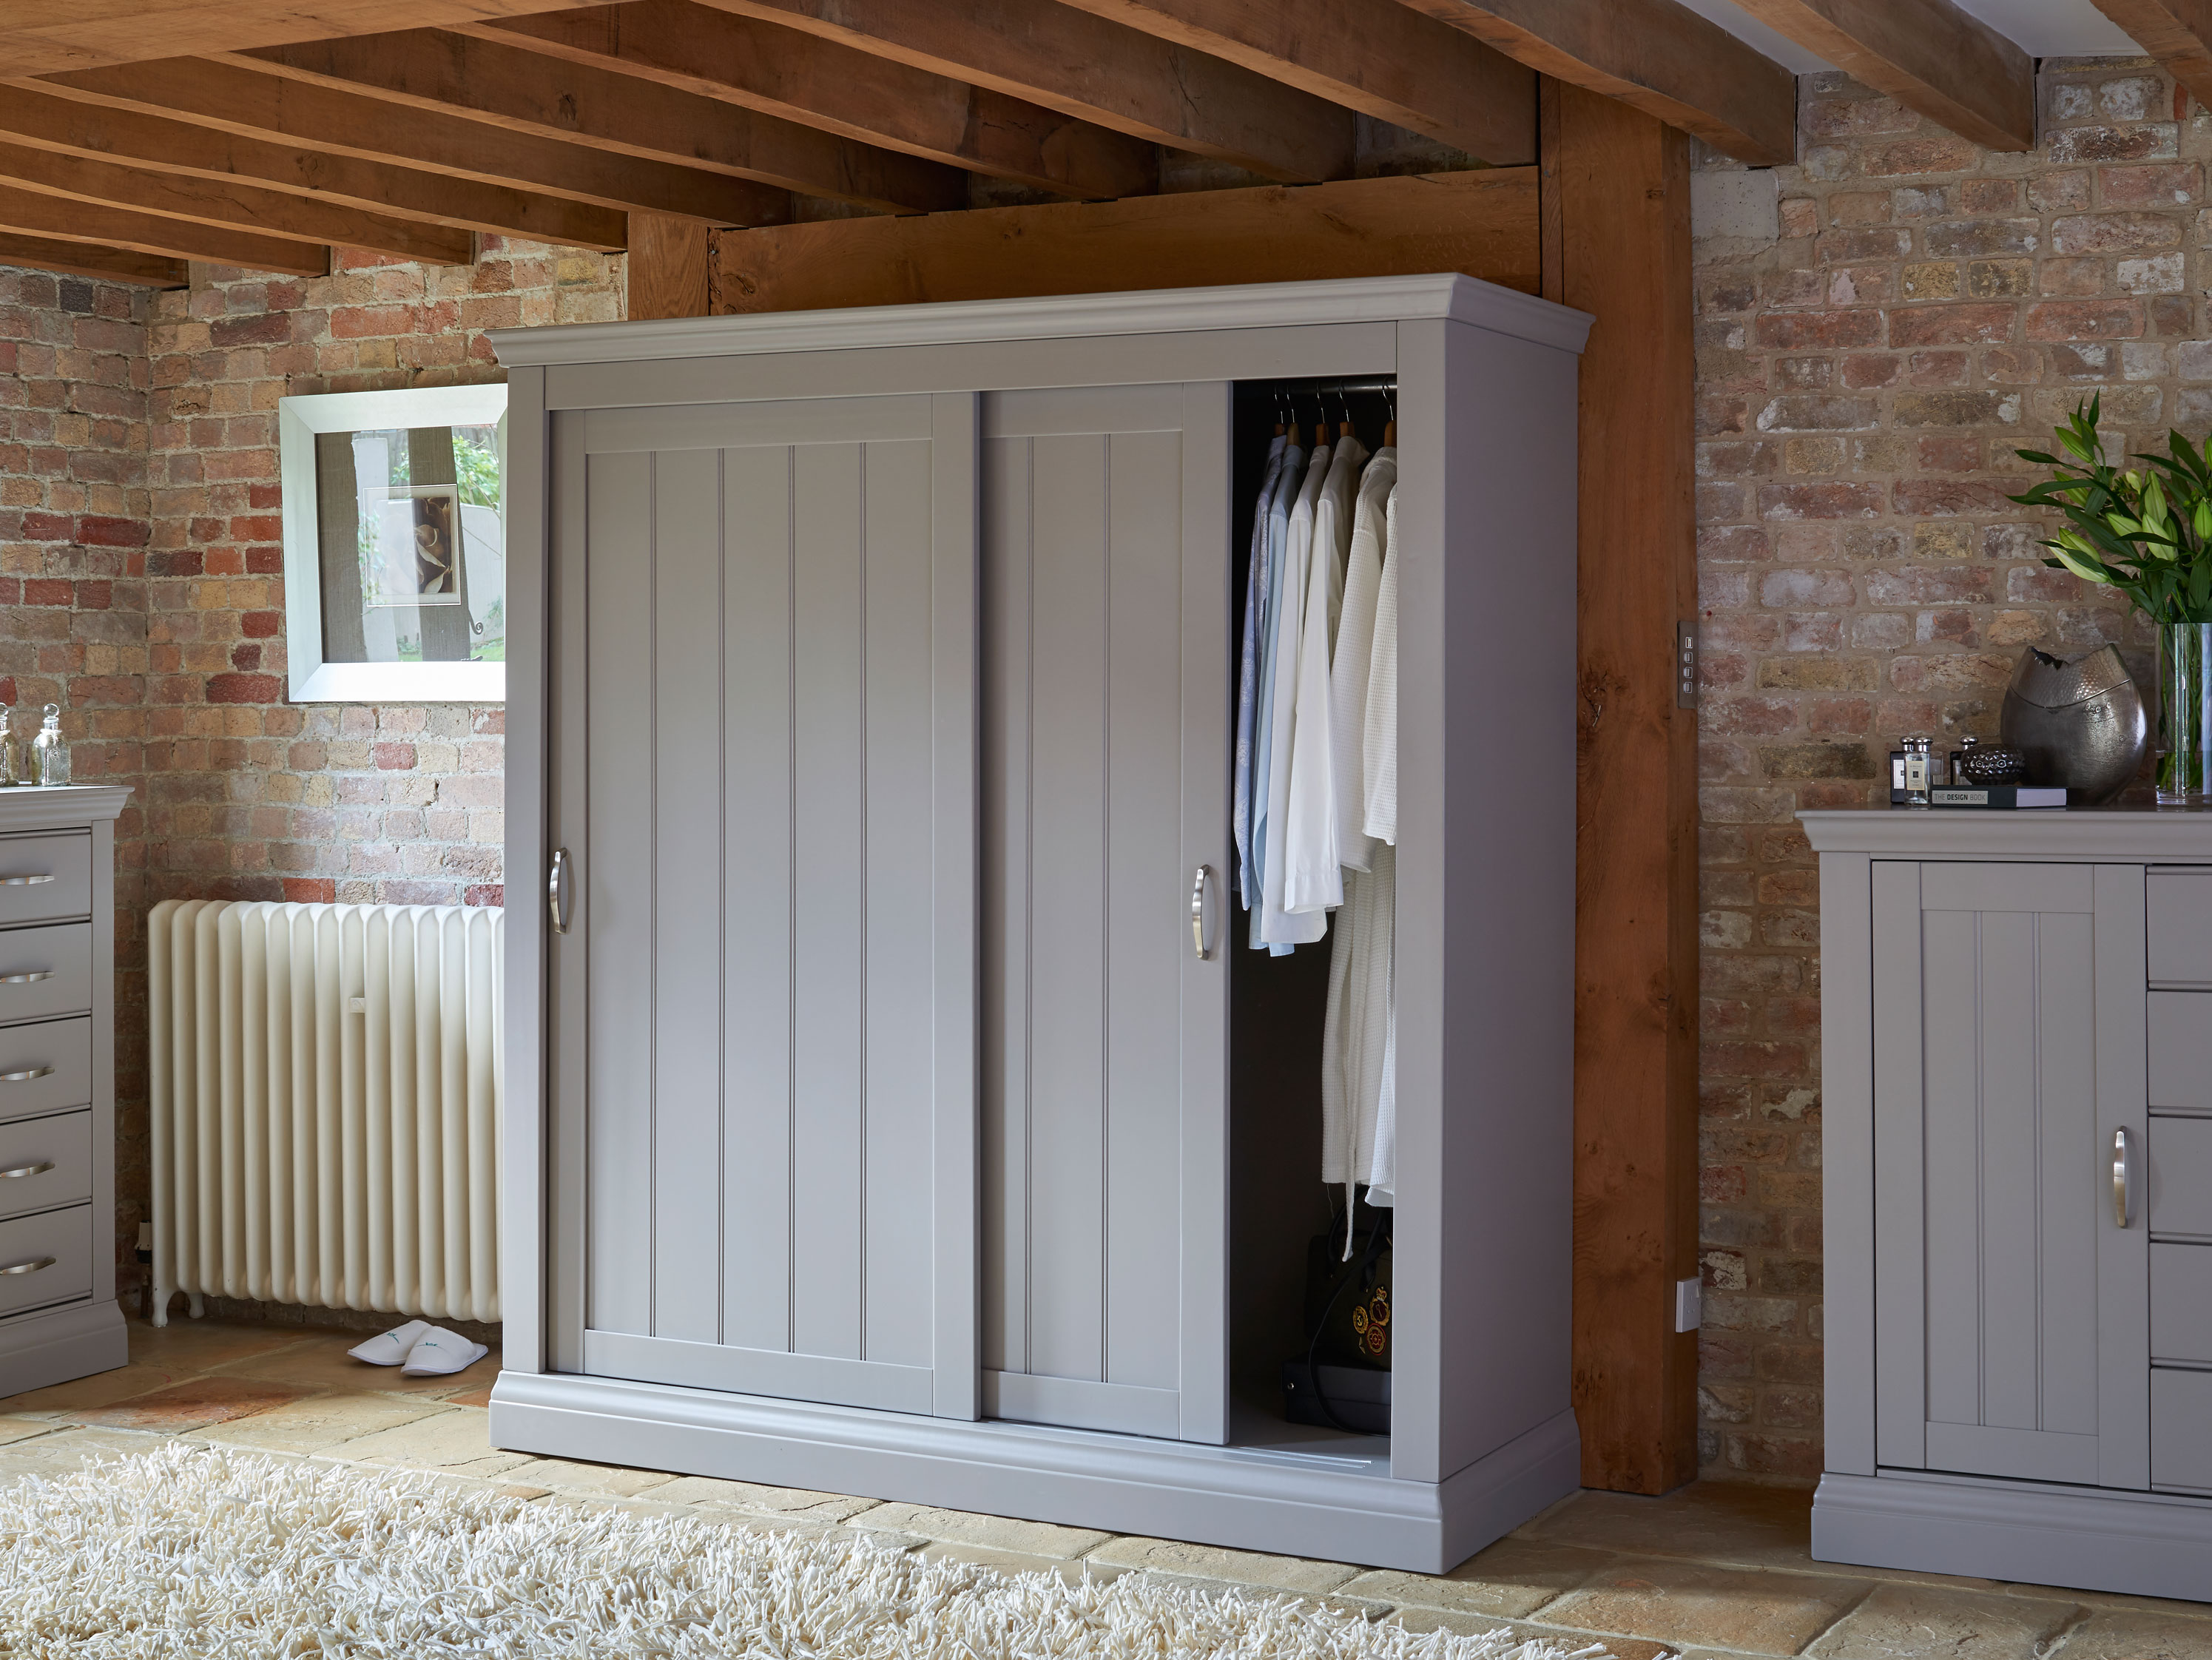 Lusso Customisable Wardrobe With Drawers 1 2m Con Tempo